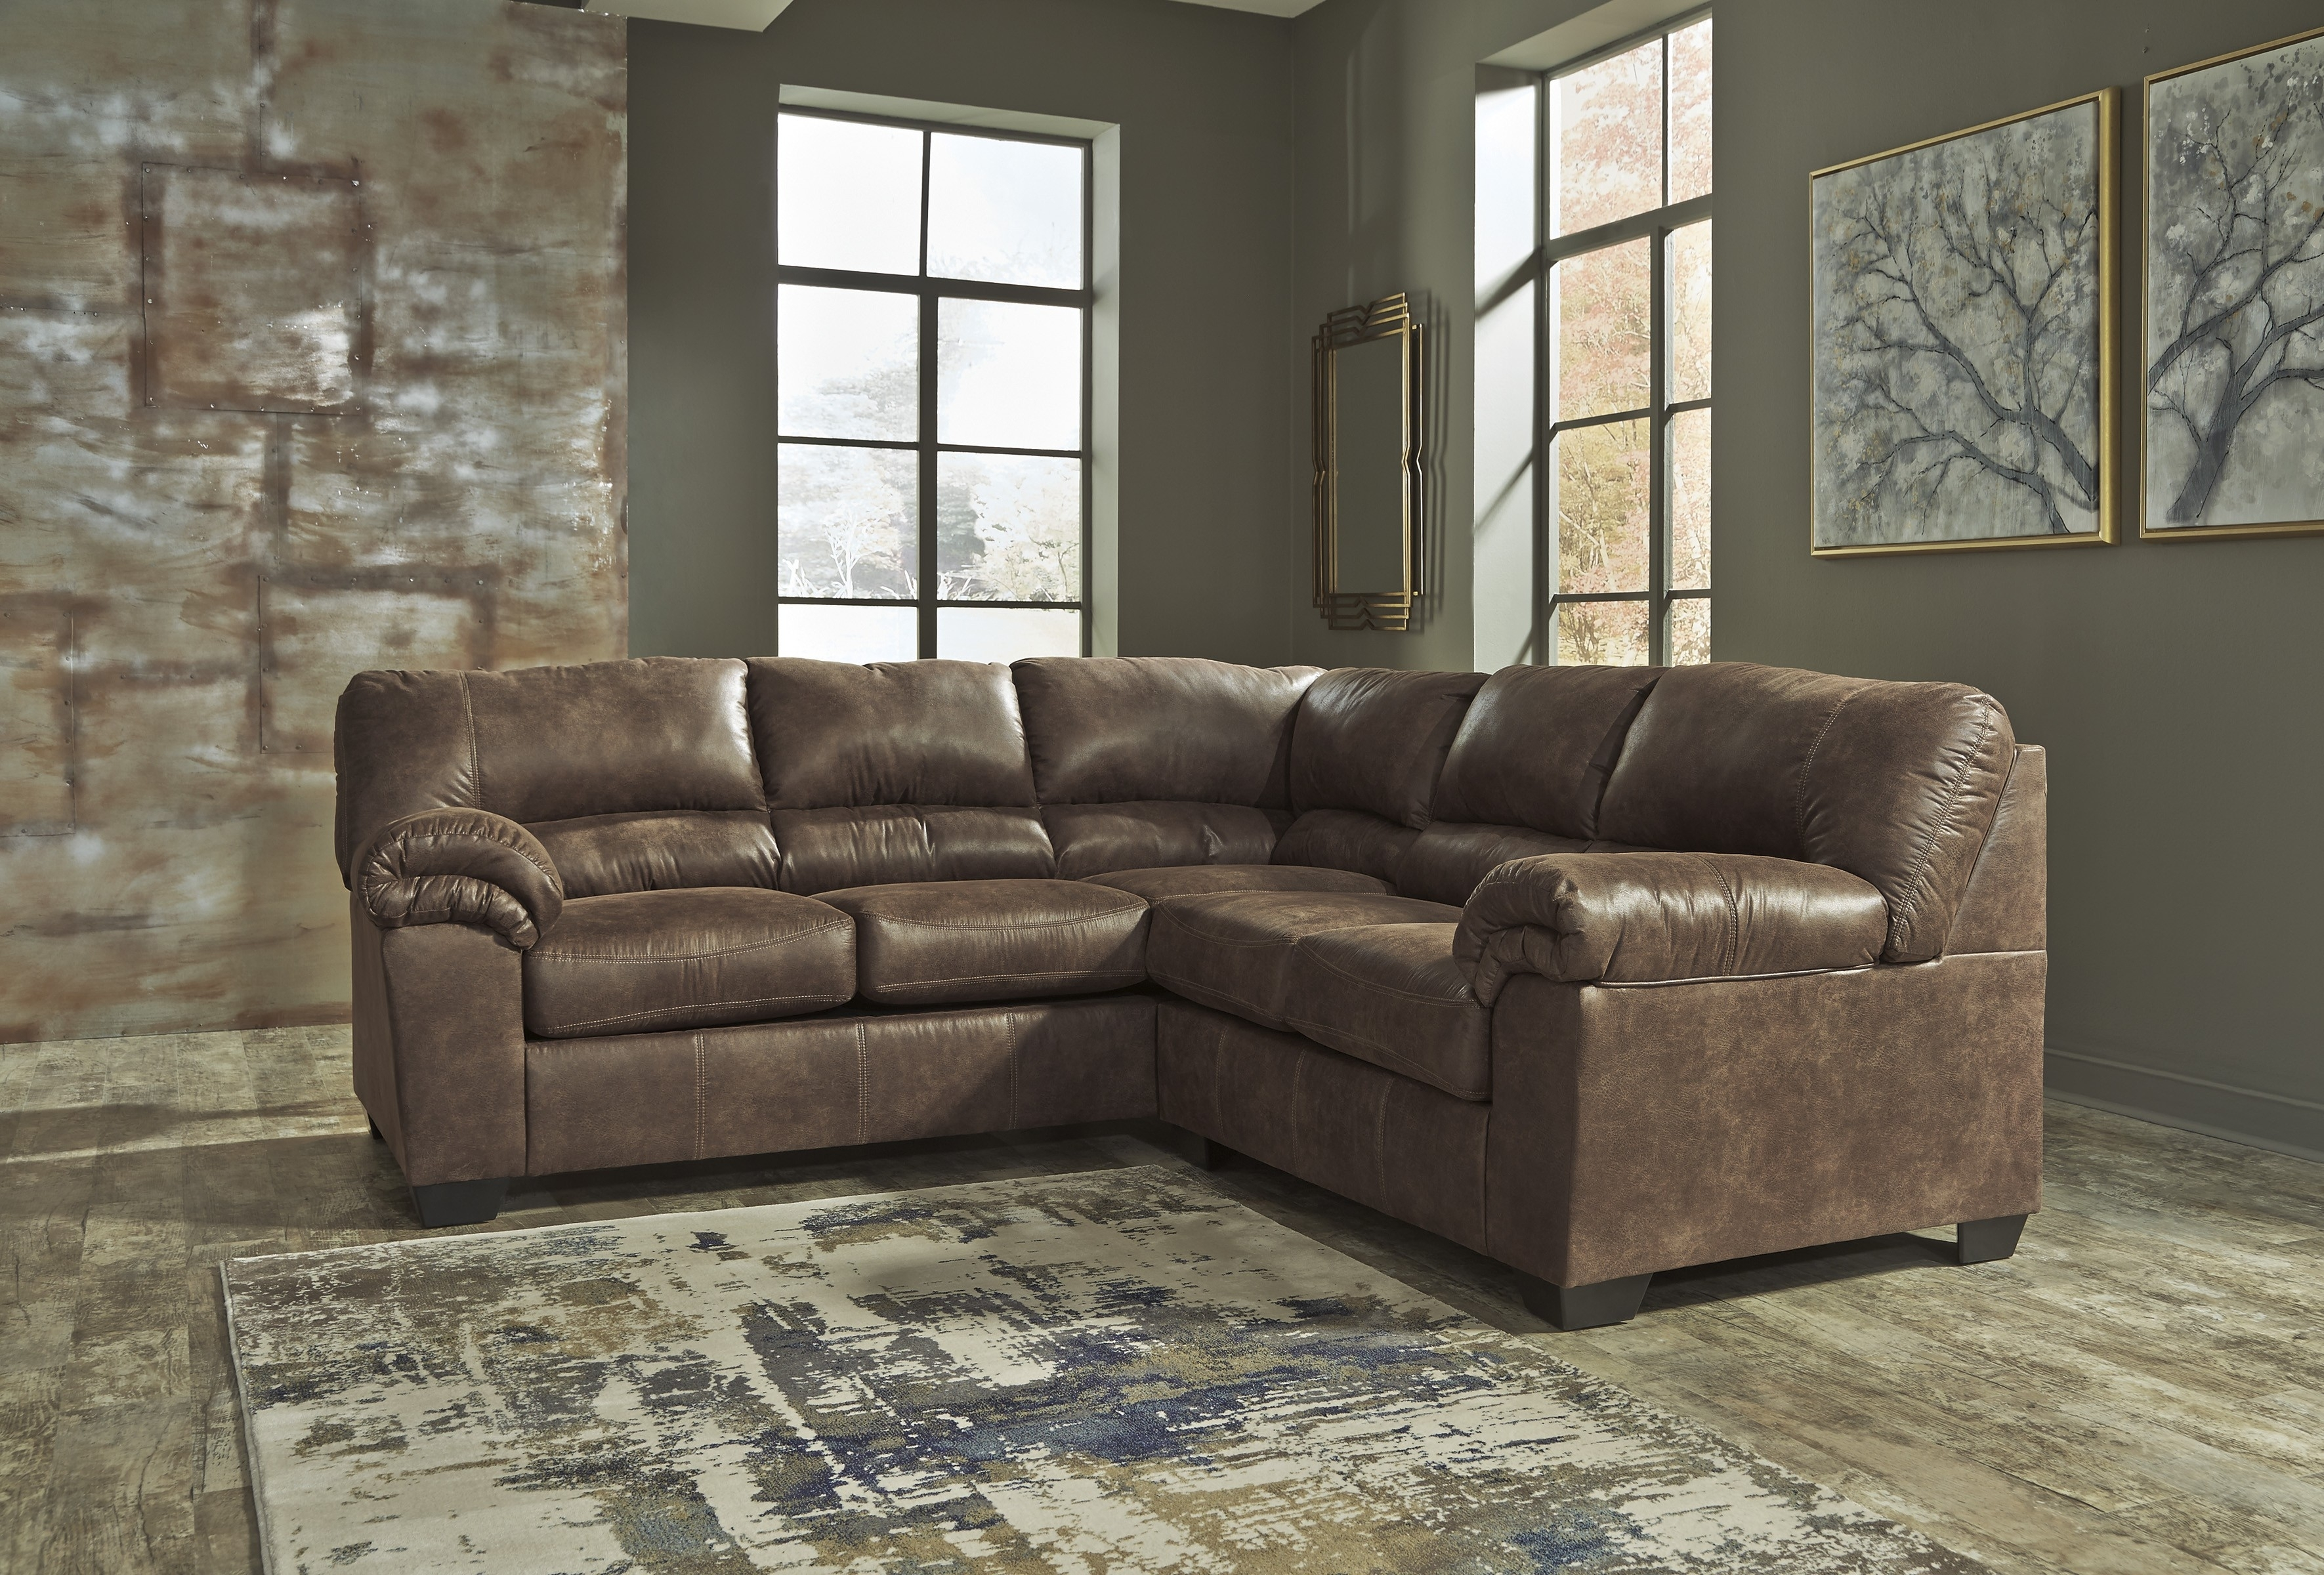 Laf Sofa Raf Loveseat | Baci Living Room In Turdur 2 Piece Sectionals With Laf Loveseat (Image 7 of 25)